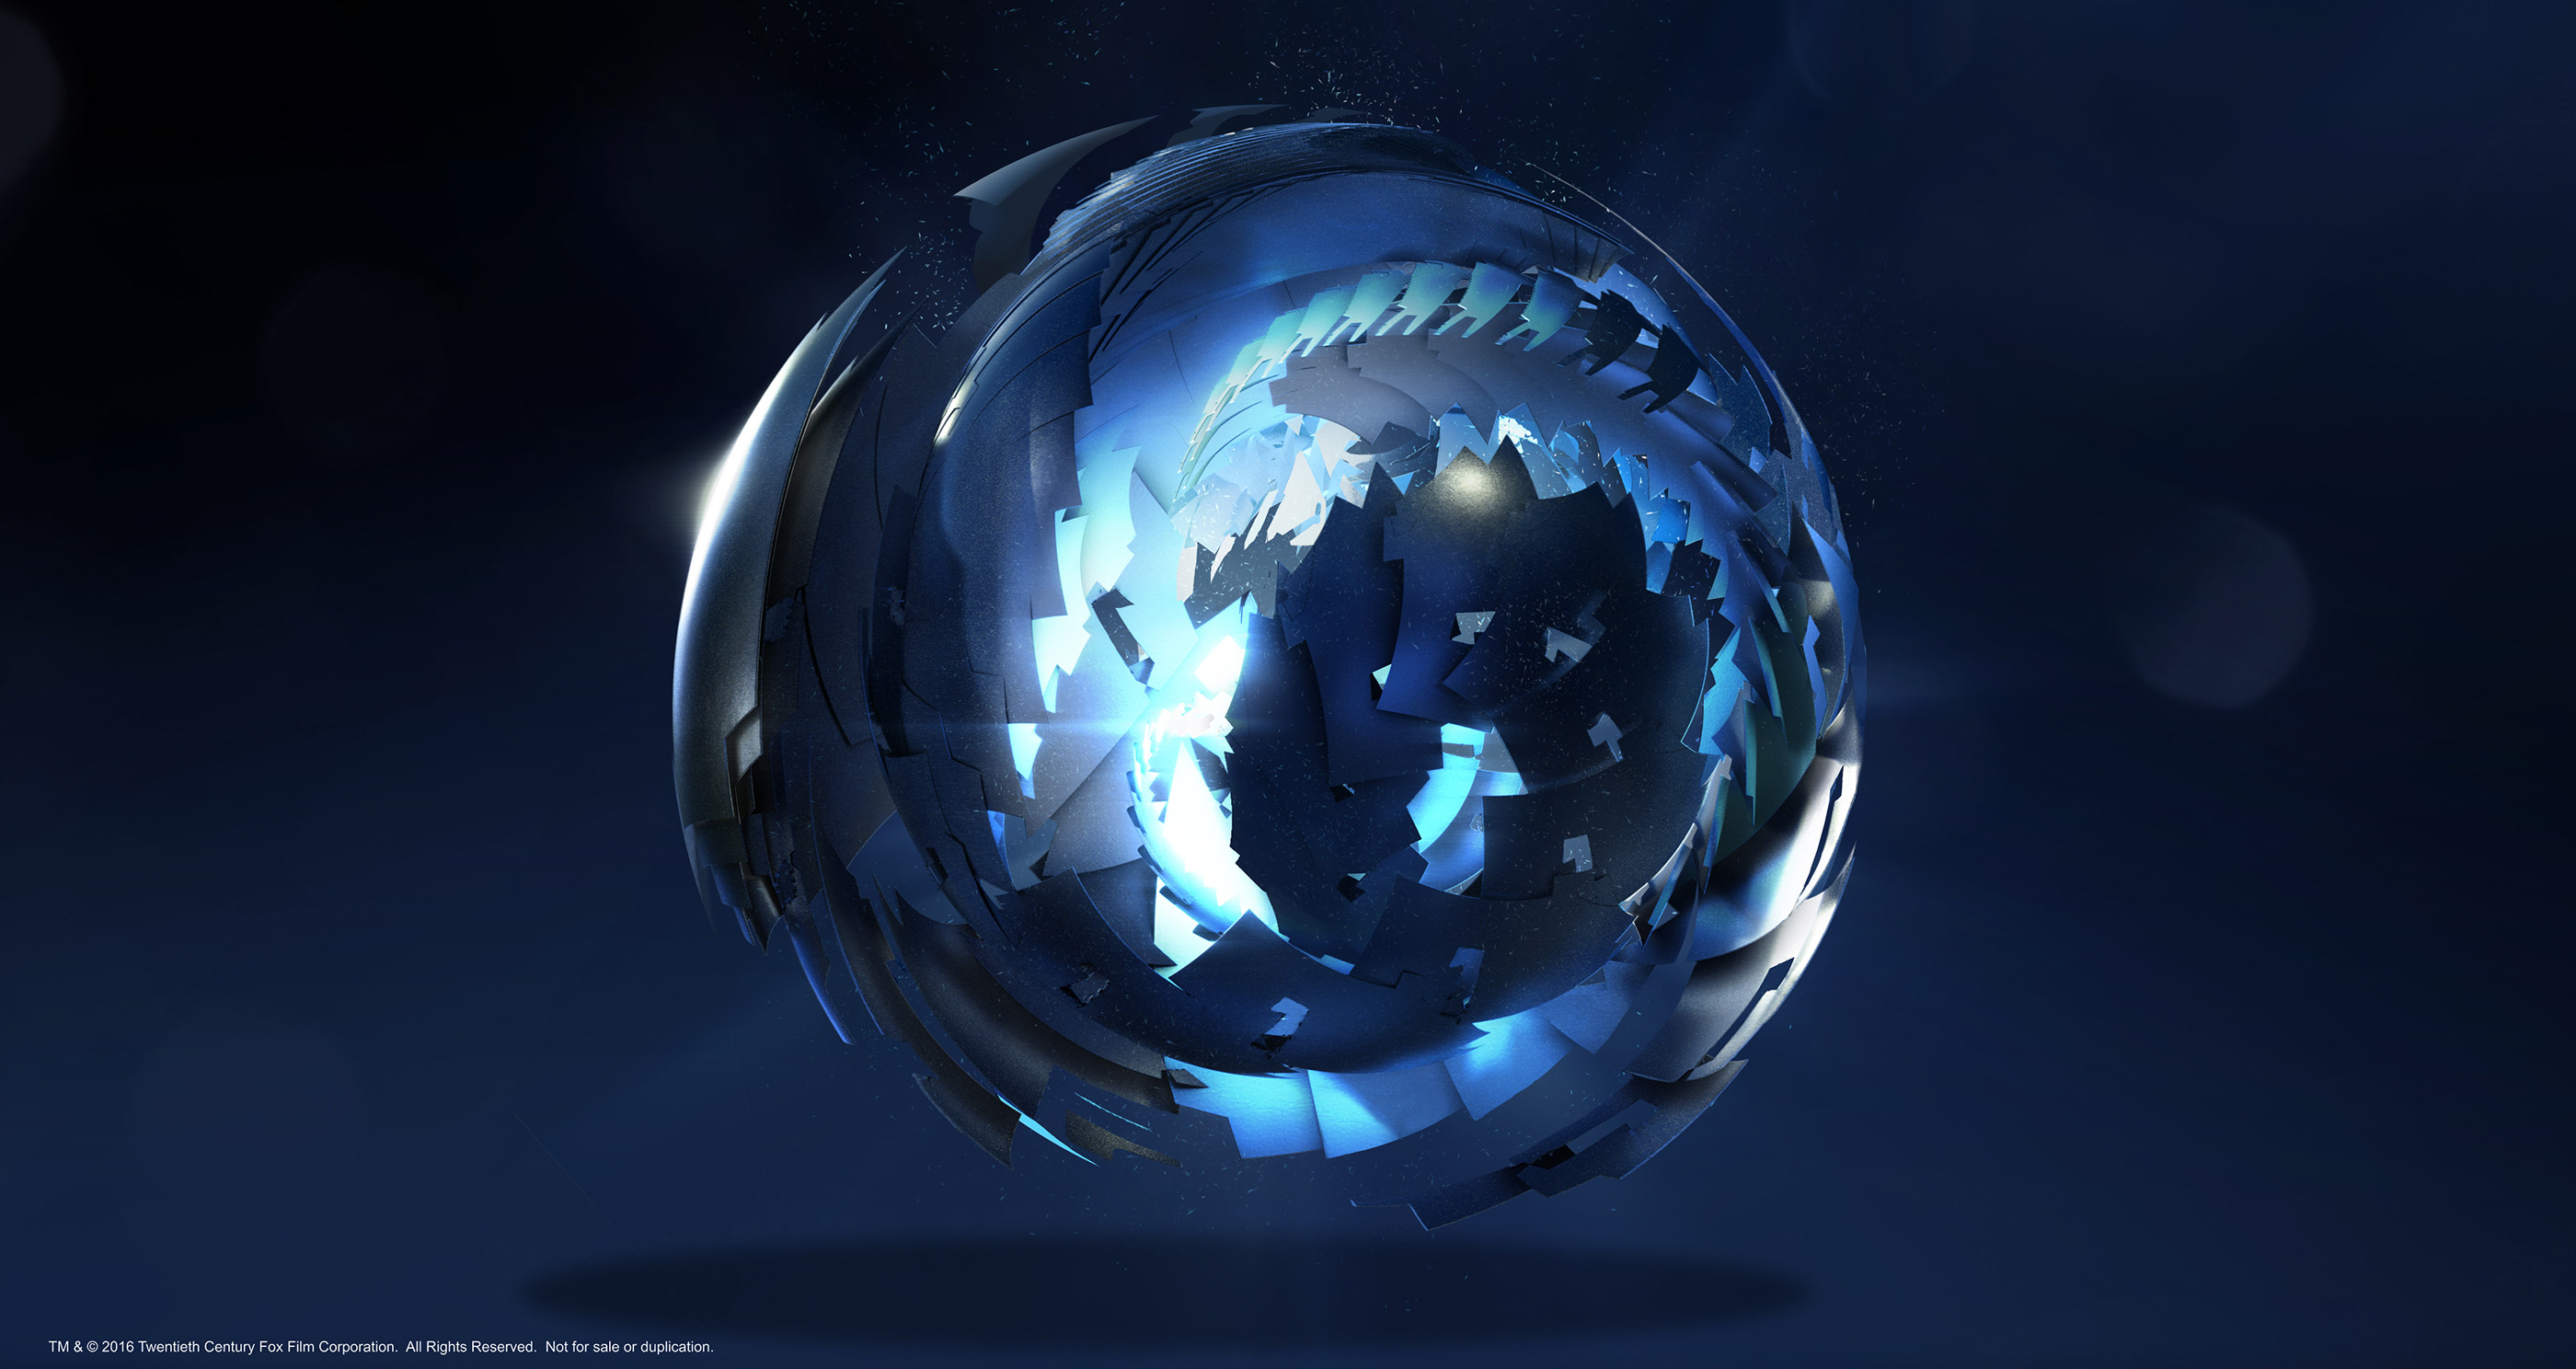 During the production phase there was a moment in which the director wanted to develop the idea of the AI sphere opening and unfolding to reveal a more complex aspect of itself inside.  AI Orb, unfolding: 1 of 3